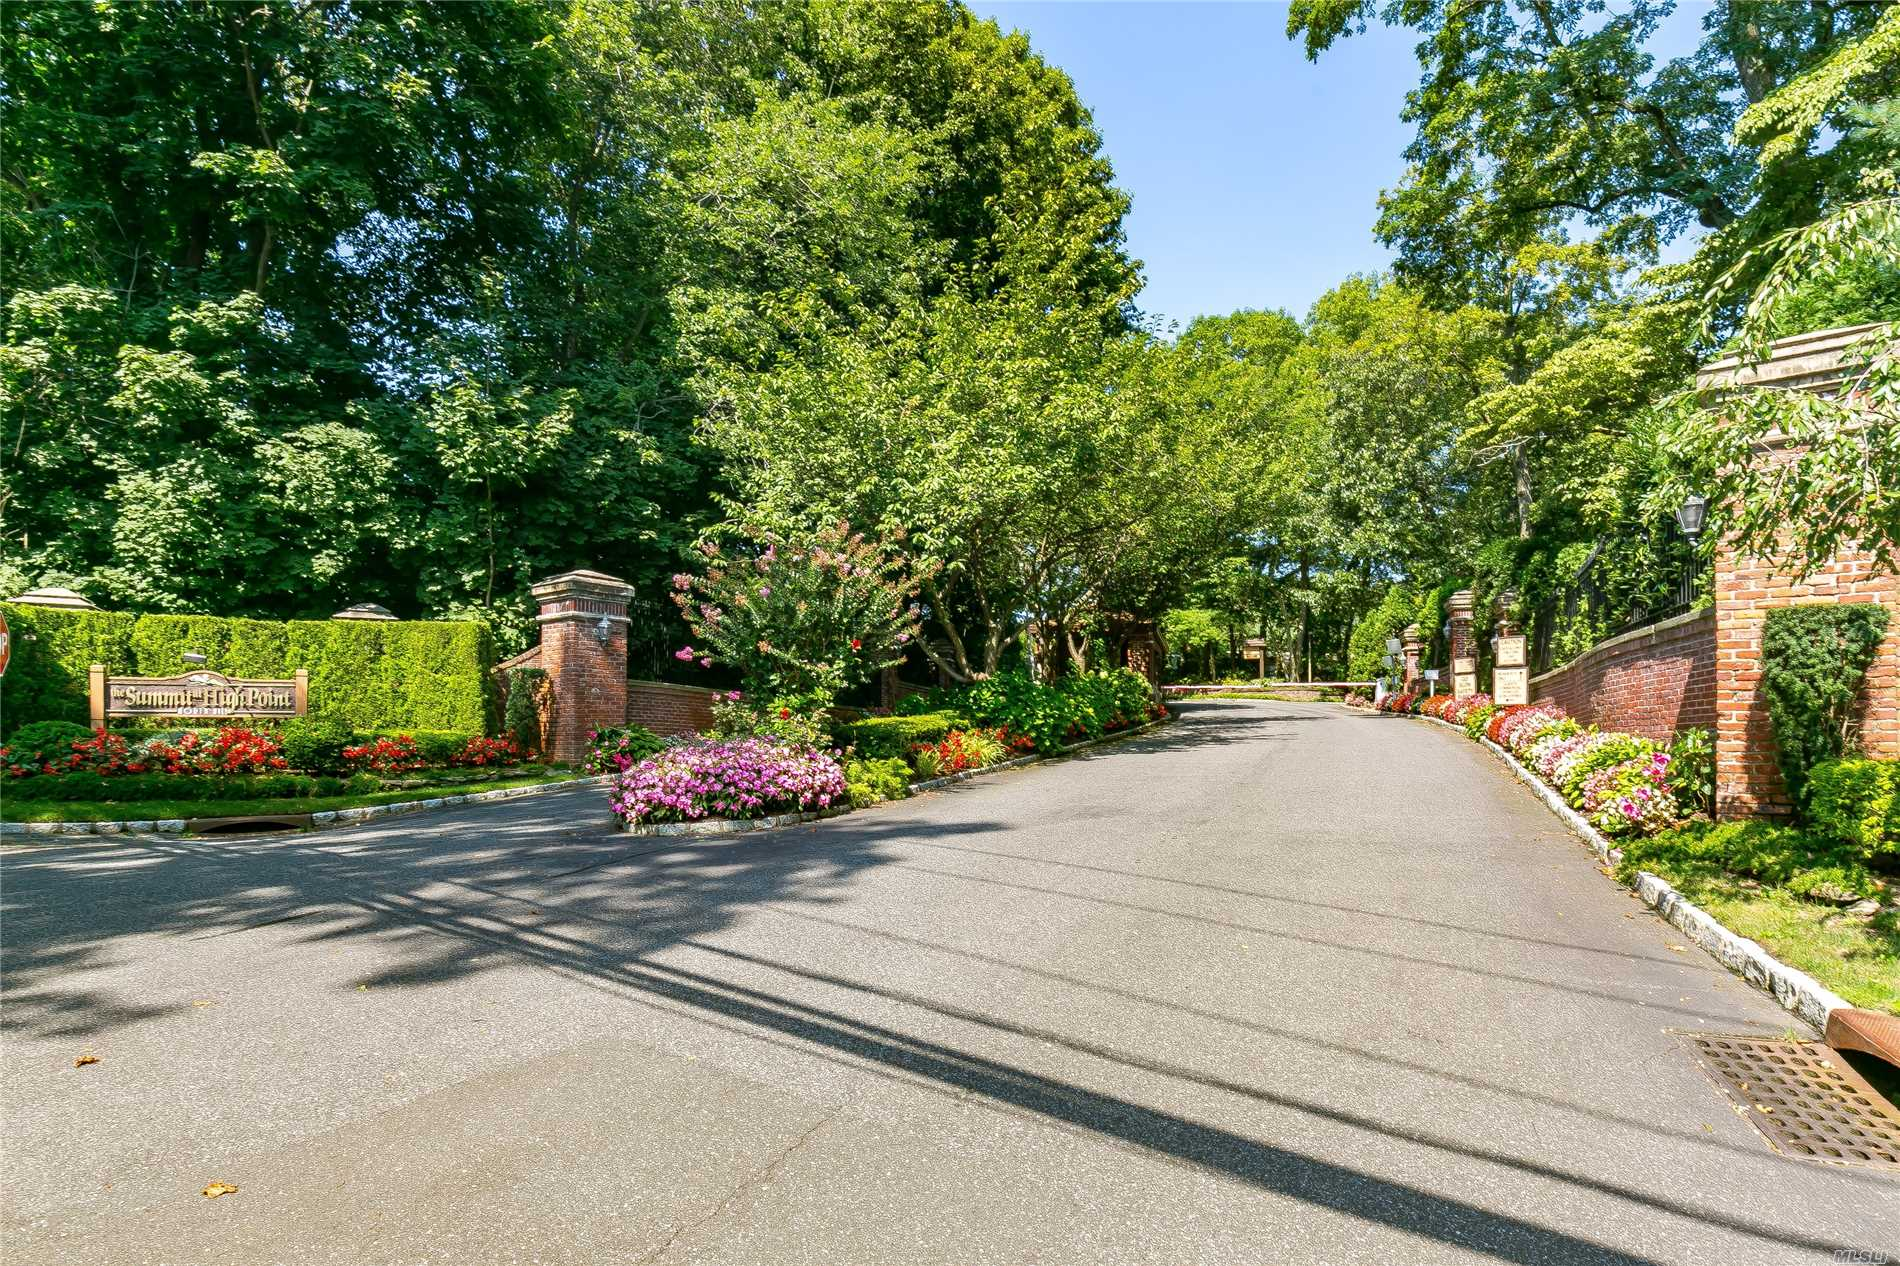 The Summit of High Point is a Gated Community in Roslyn School District with 24 hour security. This Open Floor Plan combines Living/ Dining Room at its best. The home has a gourmet Eik, with top of the line appliances and Granite counter tops. All Updated Baths, 2/3 bedrooms or loft with a walk-out basement with additional 2 brs, 1 f/bth, 1.5 garage ( can be easily converted into 2-car garage)